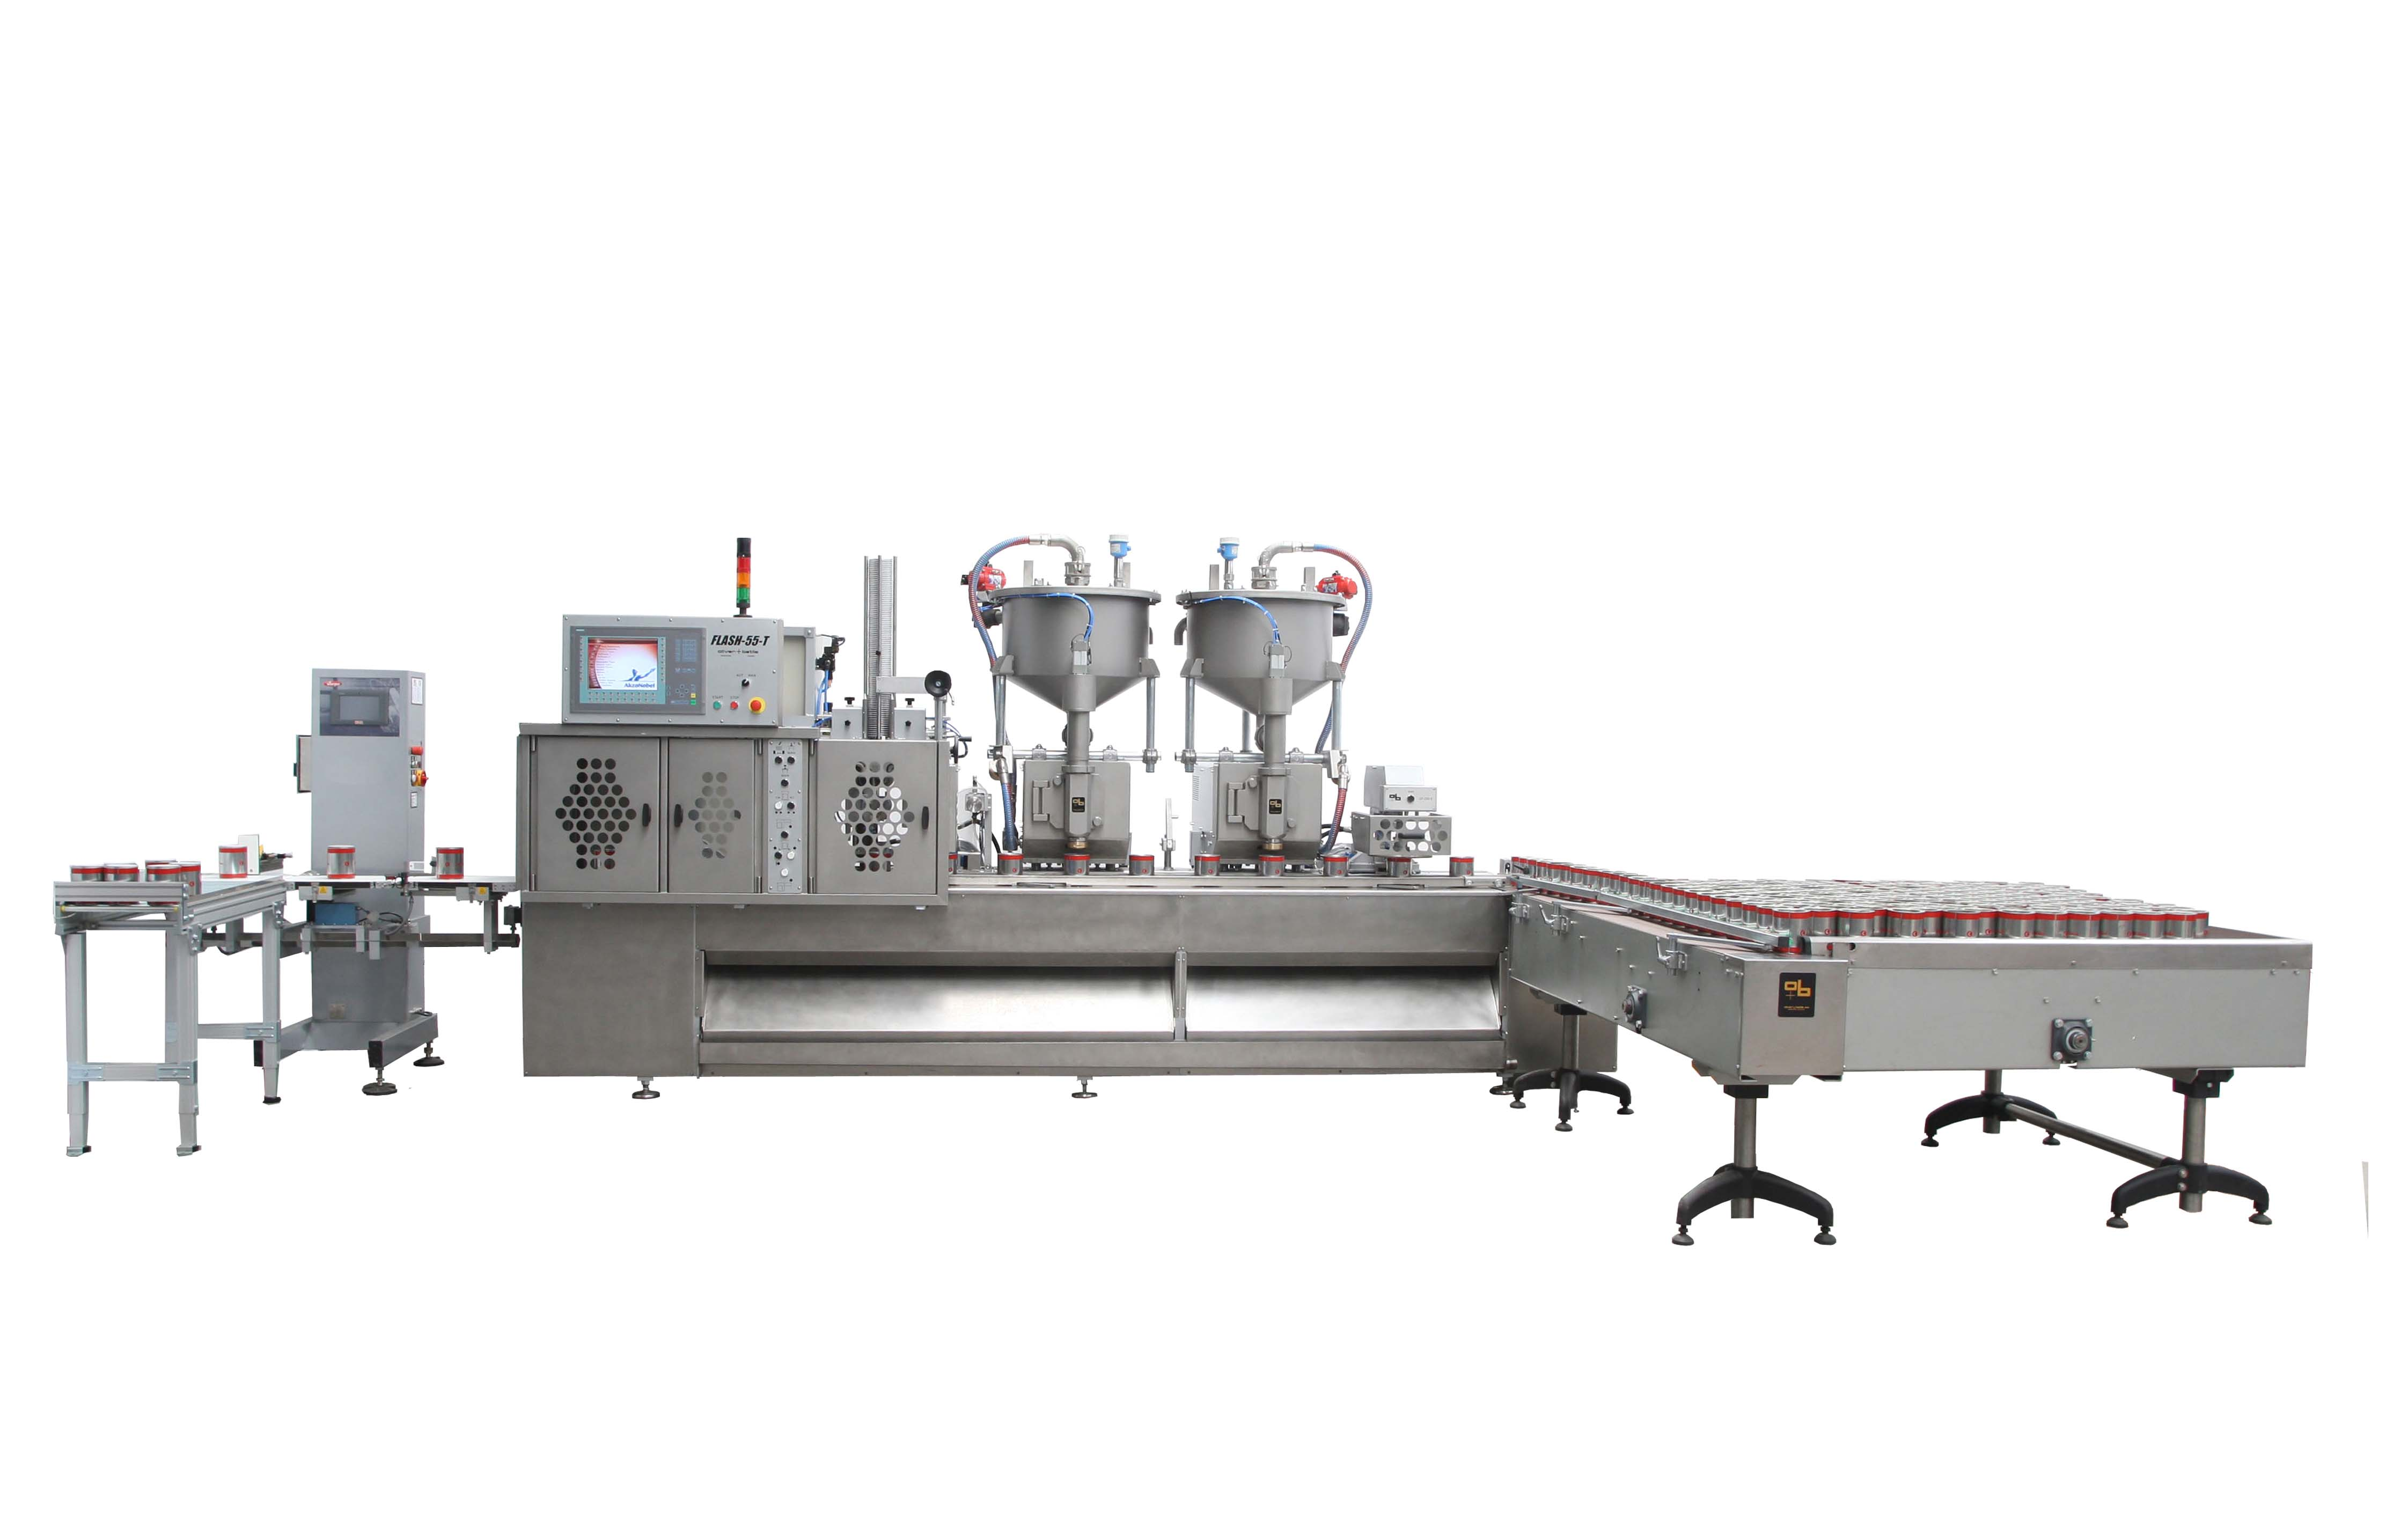 Flash 55 ST 300 filling line